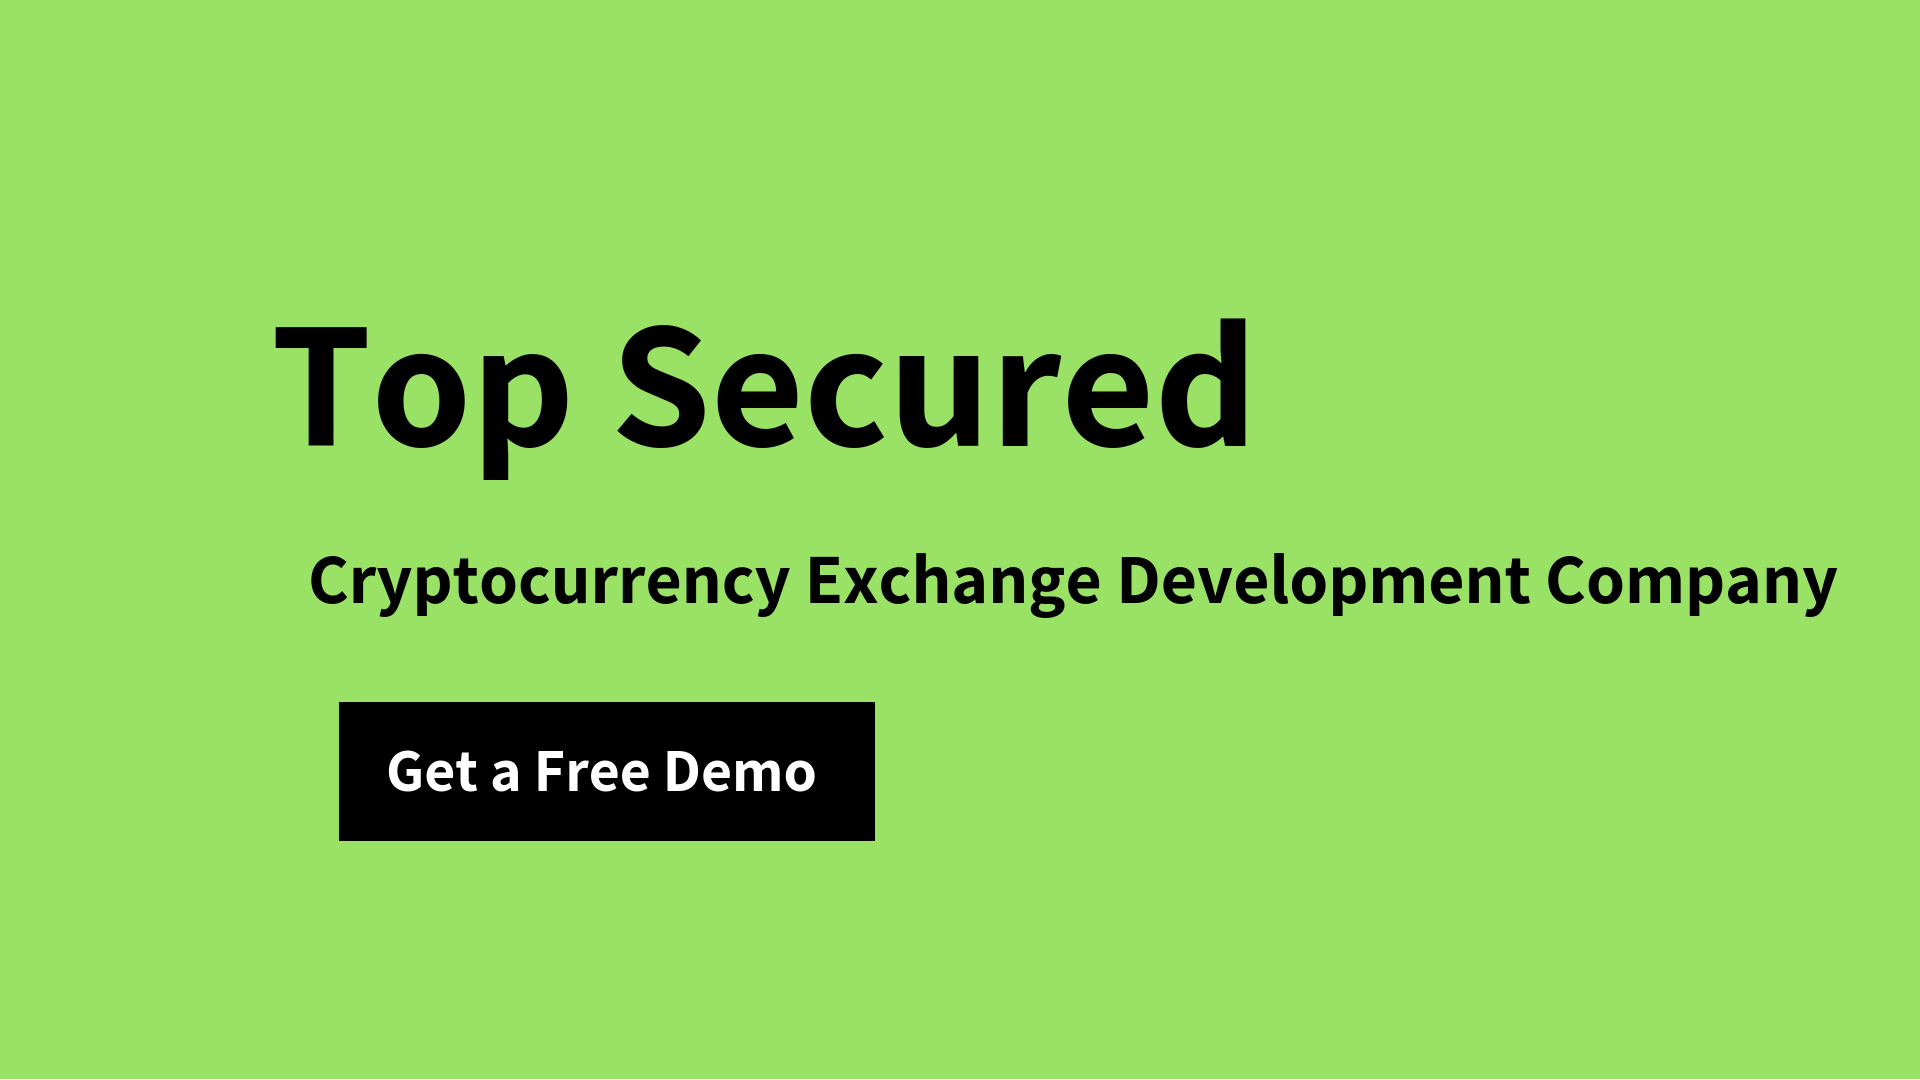 Coinsclone is an Indian #Cryptocurrency Exchange Development